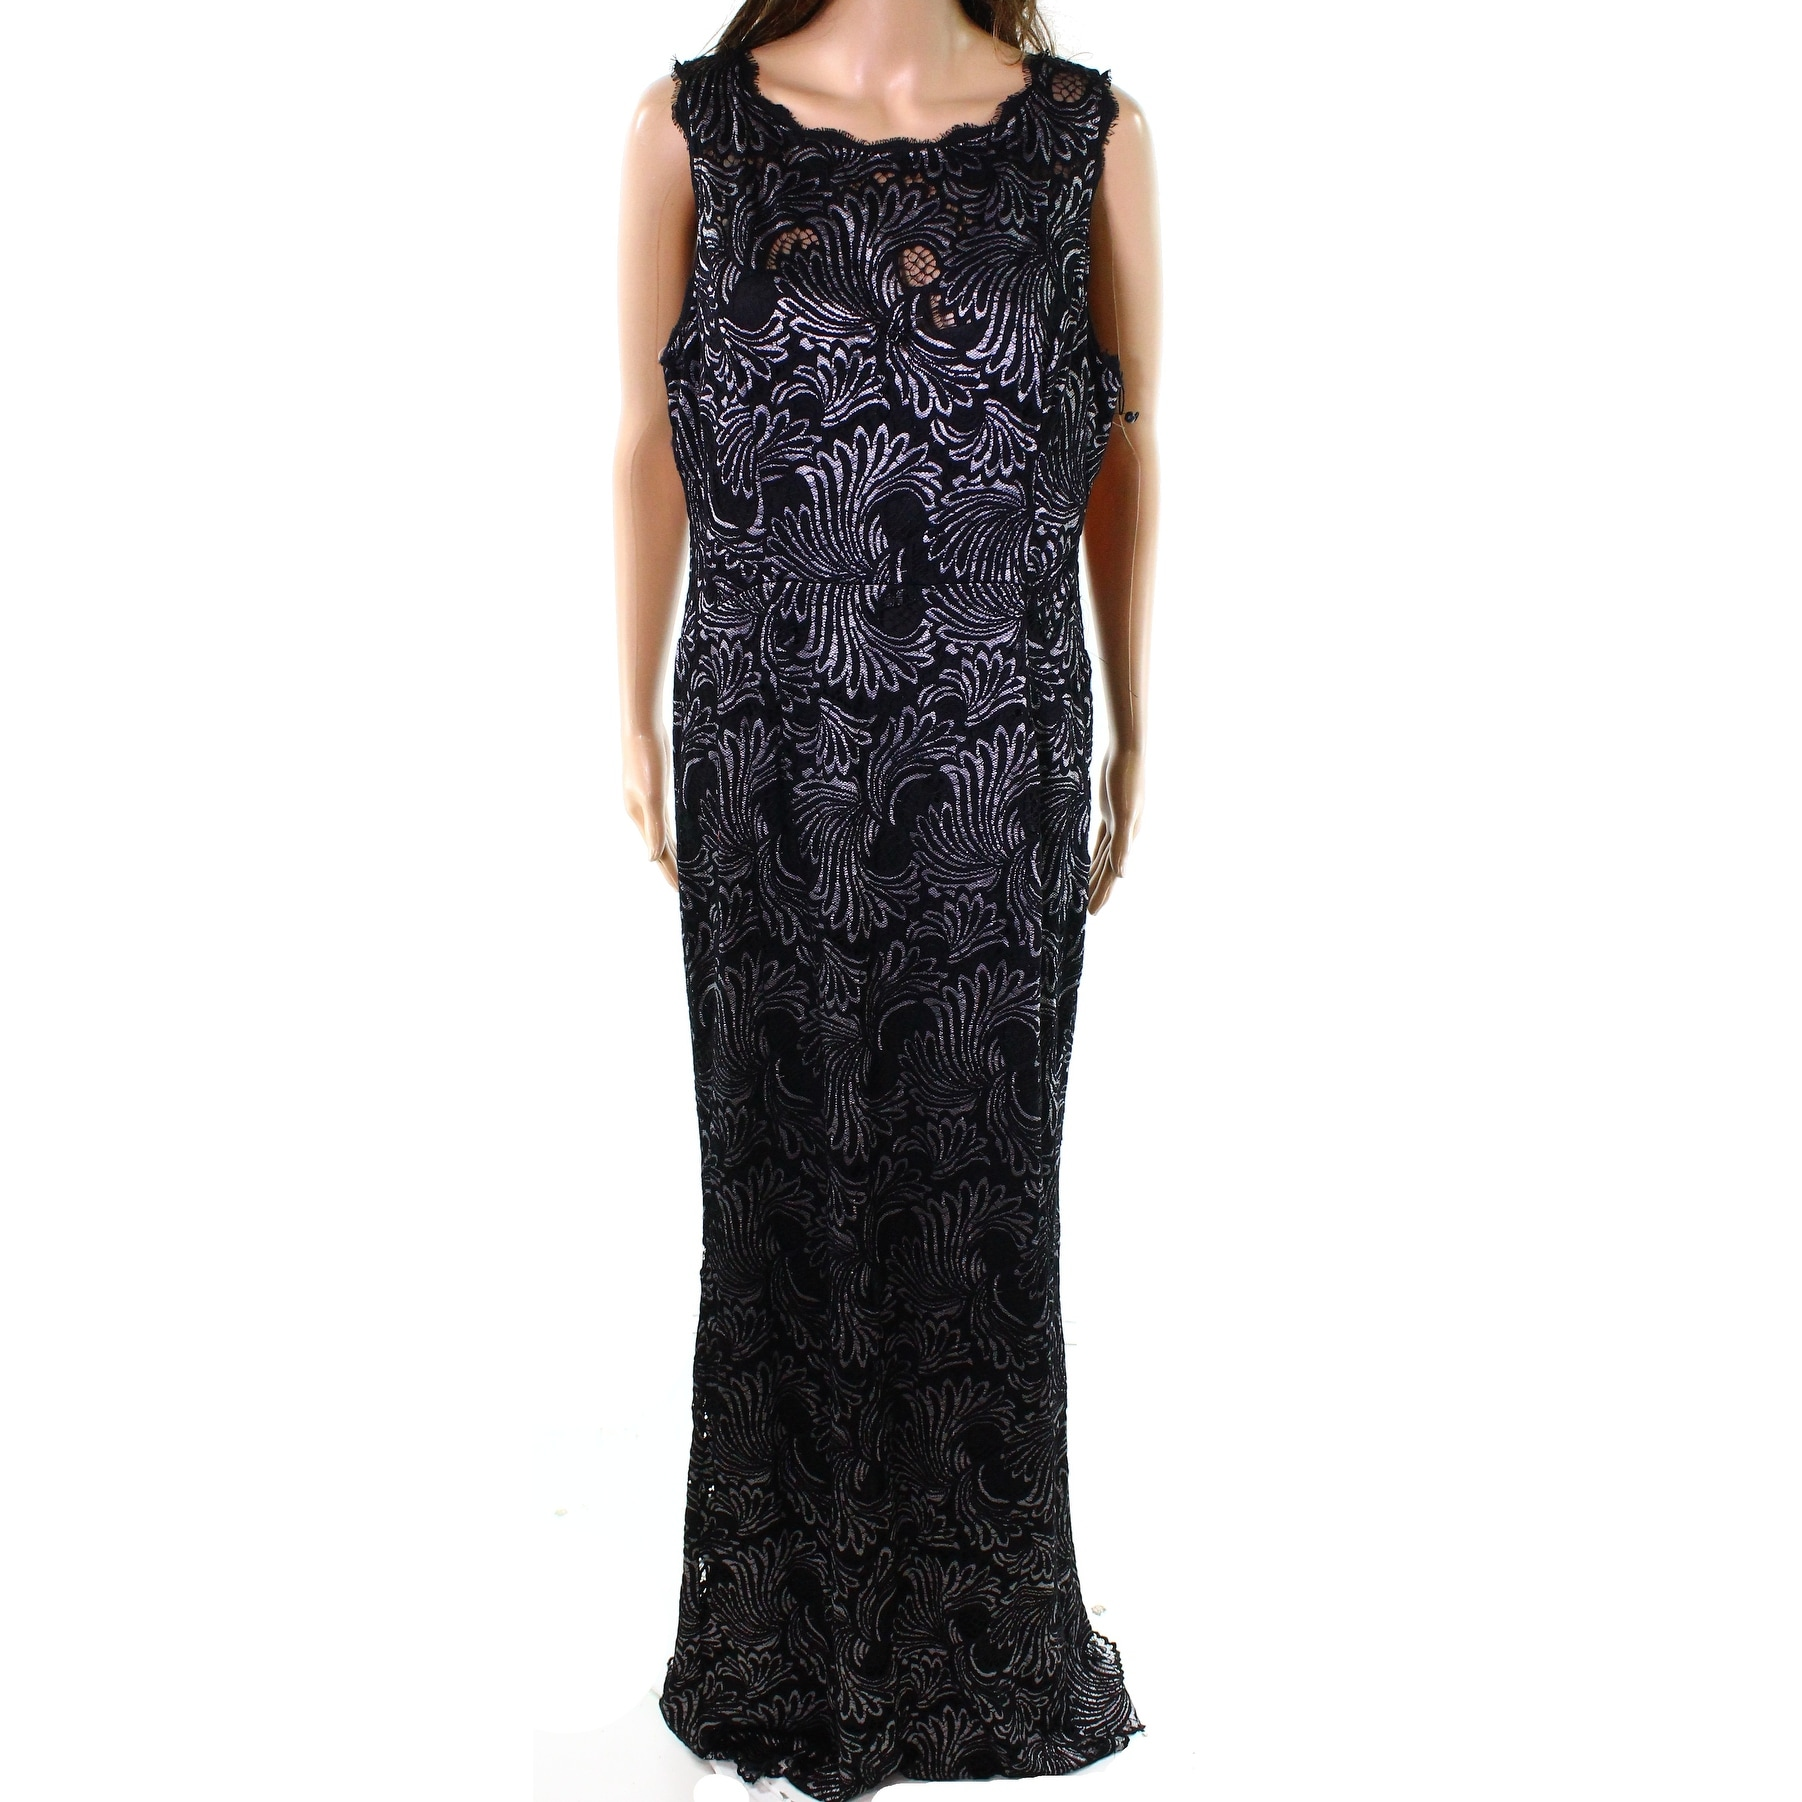 e0841ed6da4 Shop Adrianna Papell Black Womens Size 14 Lace Sleeveless Gown Dress - Free  Shipping Today - Overstock.com - 26986251